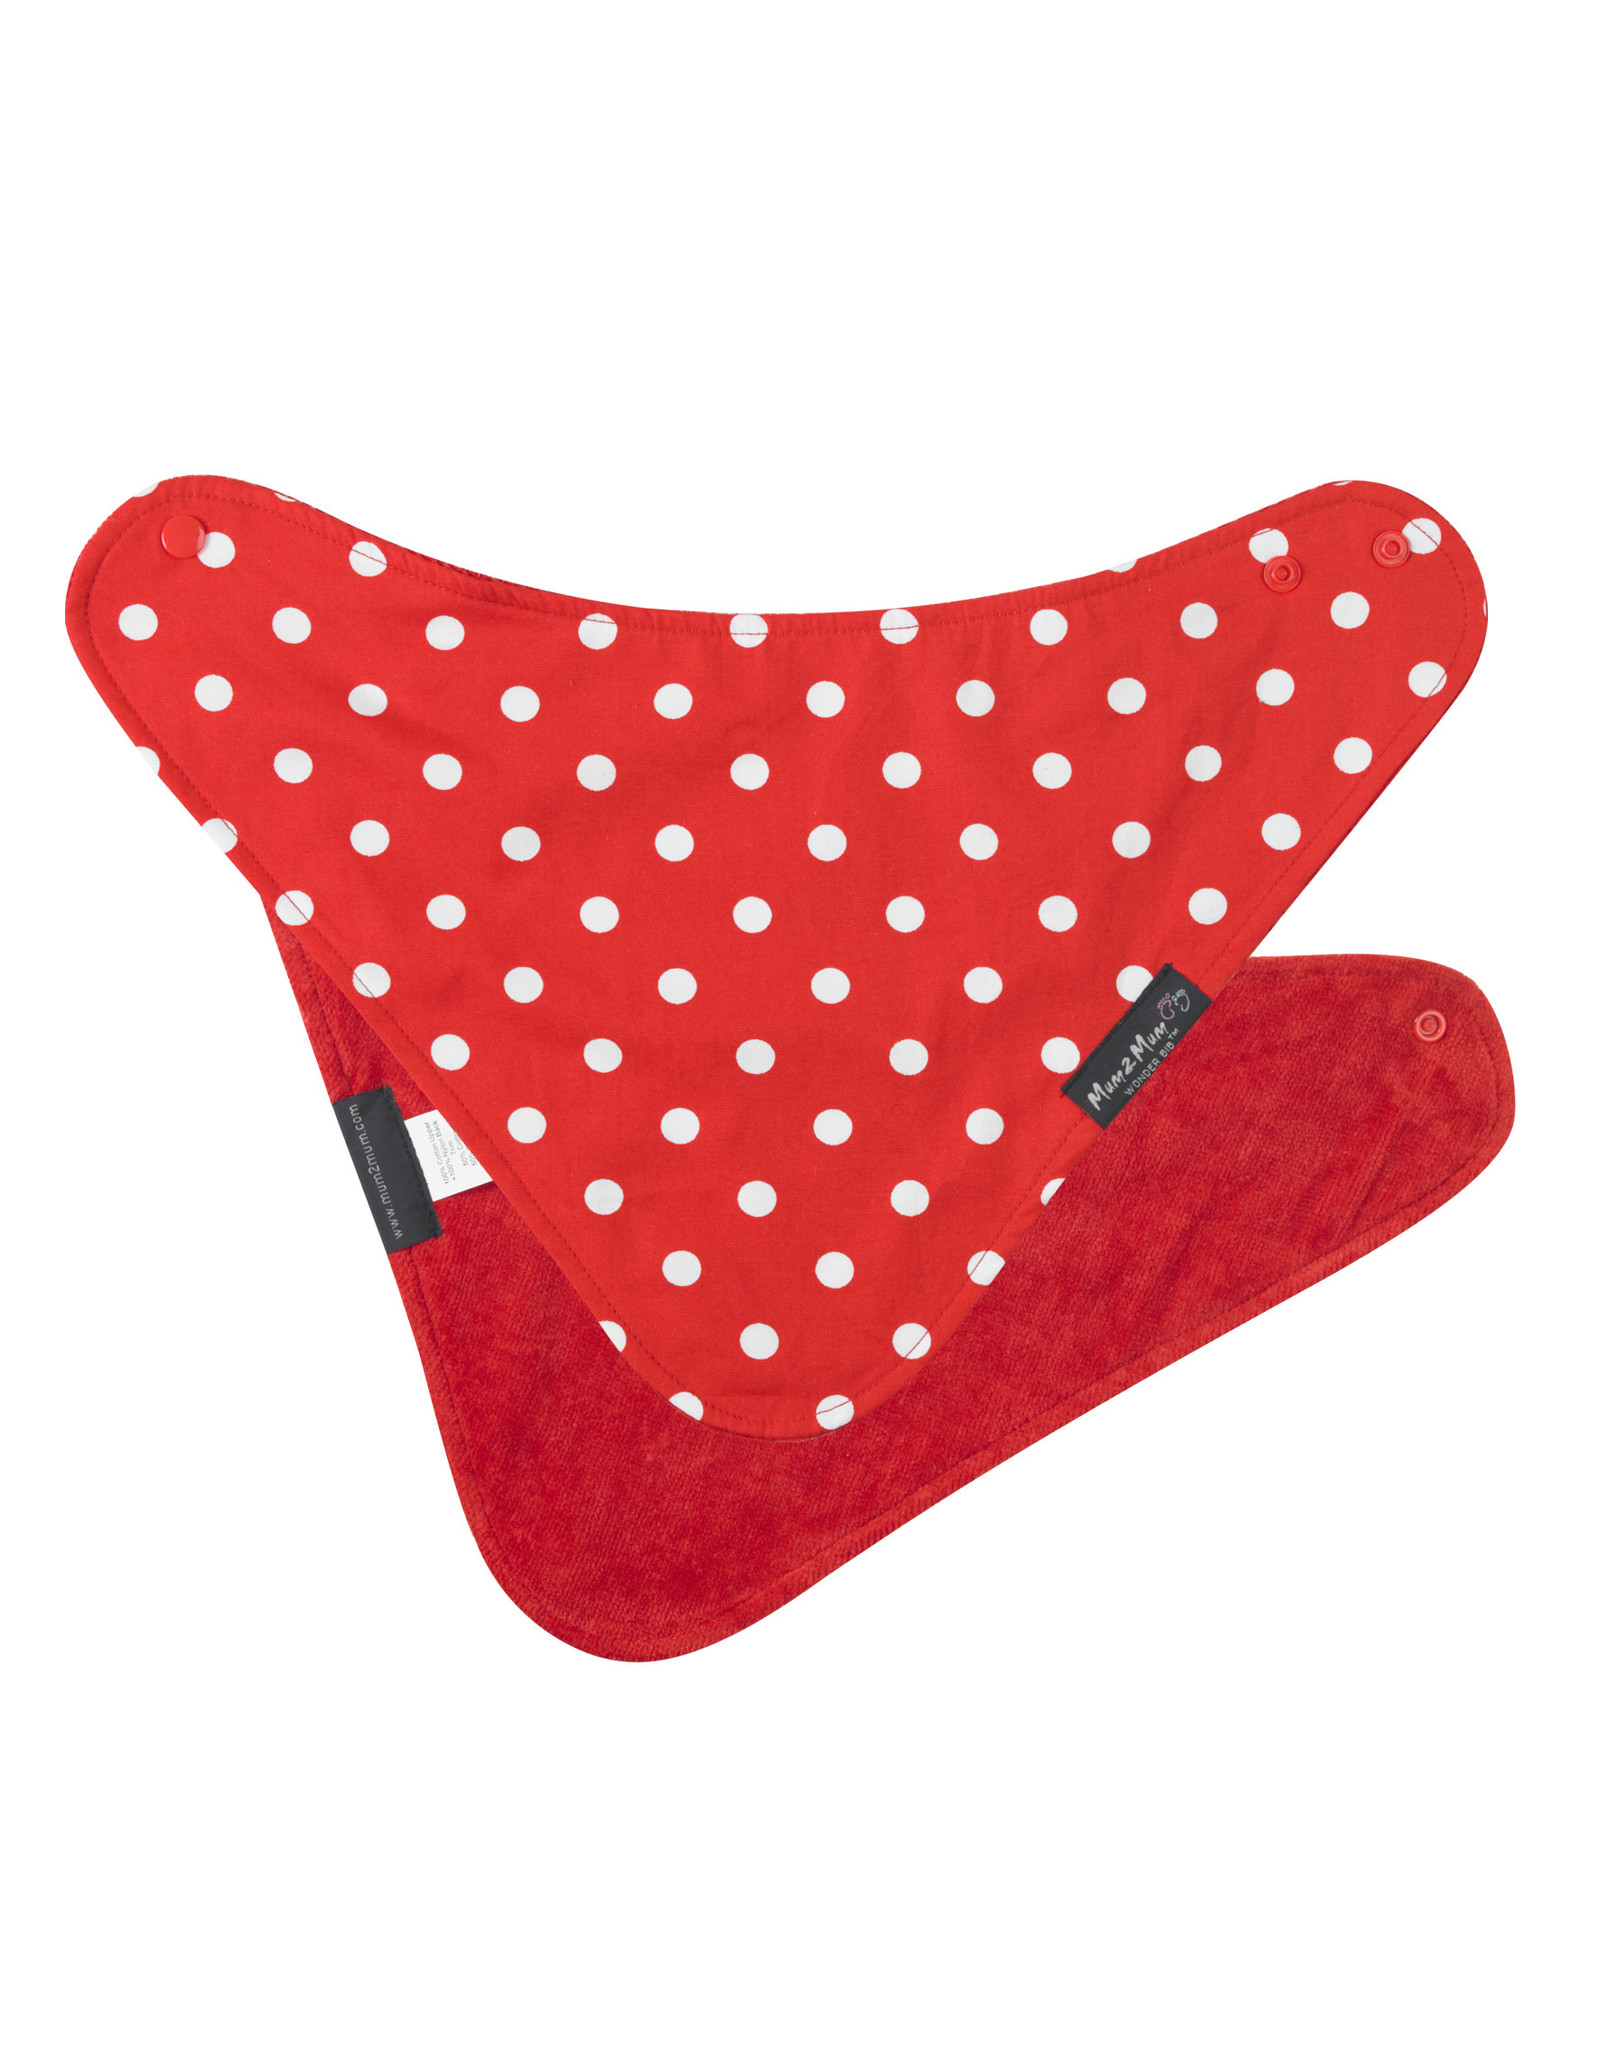 Mum2Mum Mum2Mum Fashion Bib Red Dots 6 pieces